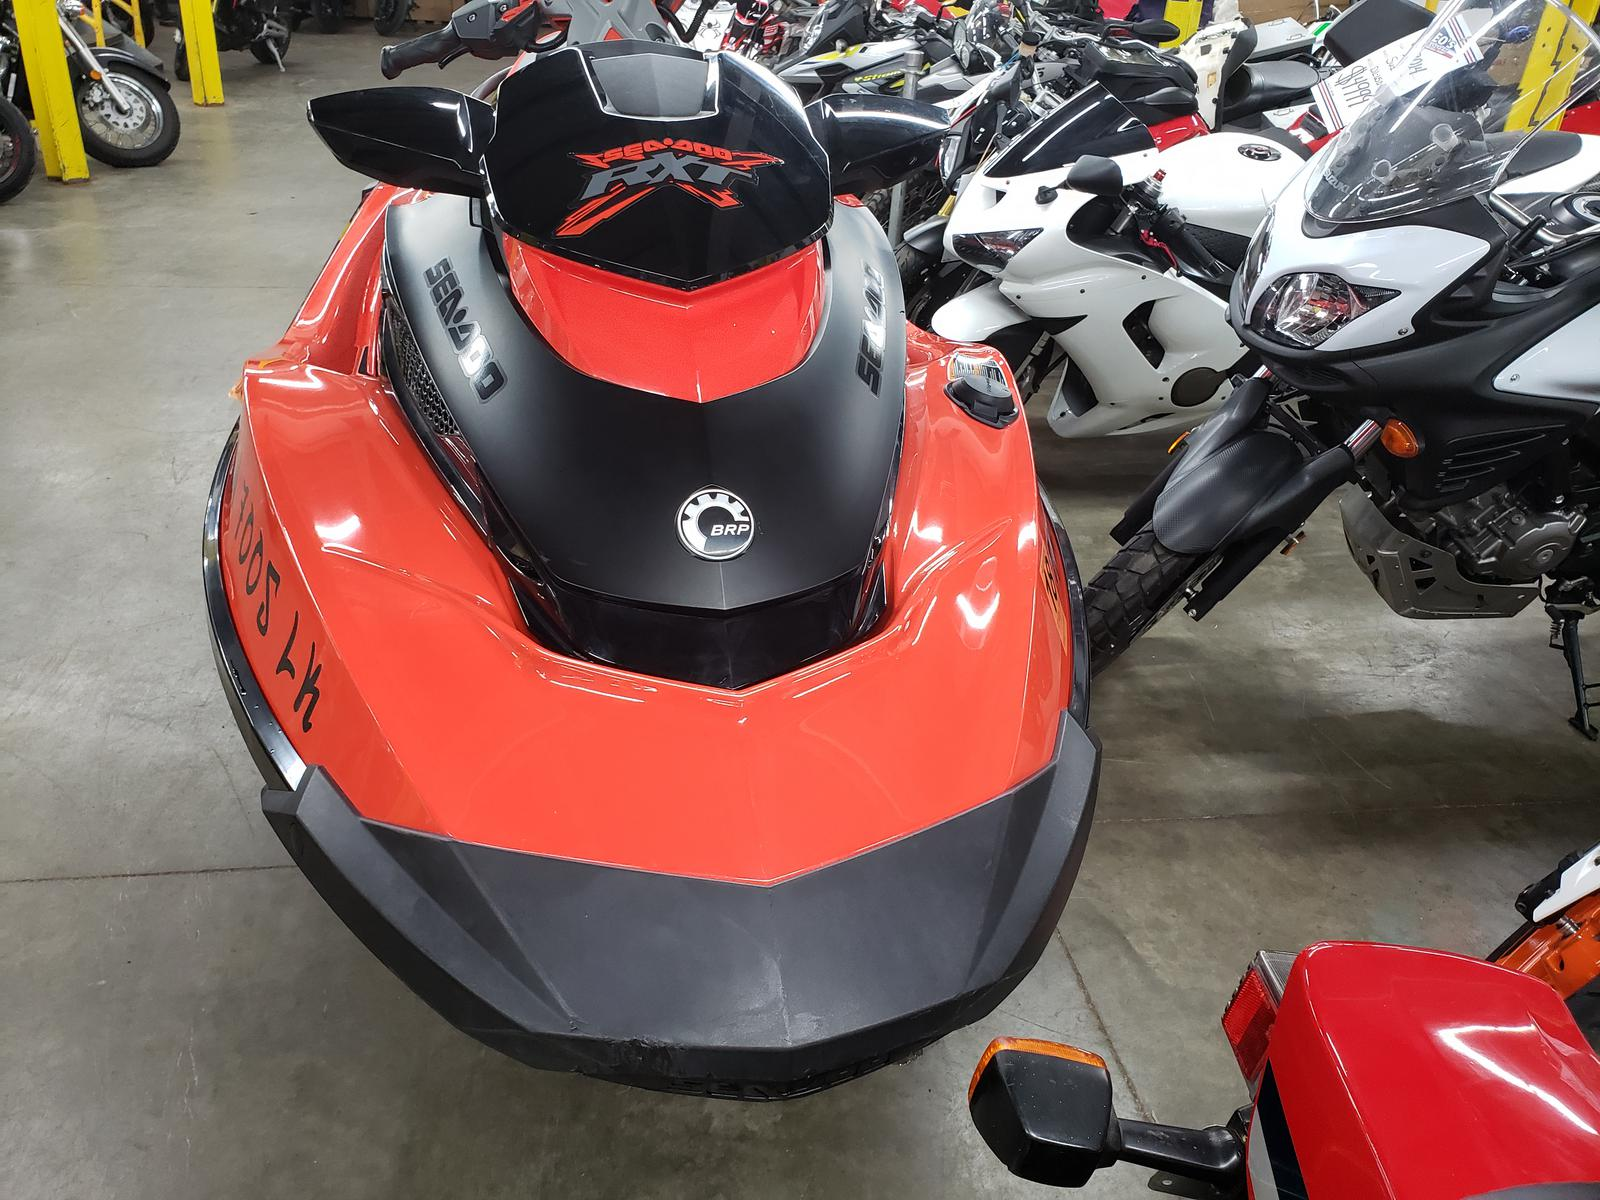 2016 Sea-Doo RXT-X 300 for sale in Lakeville, MN  Leo's South